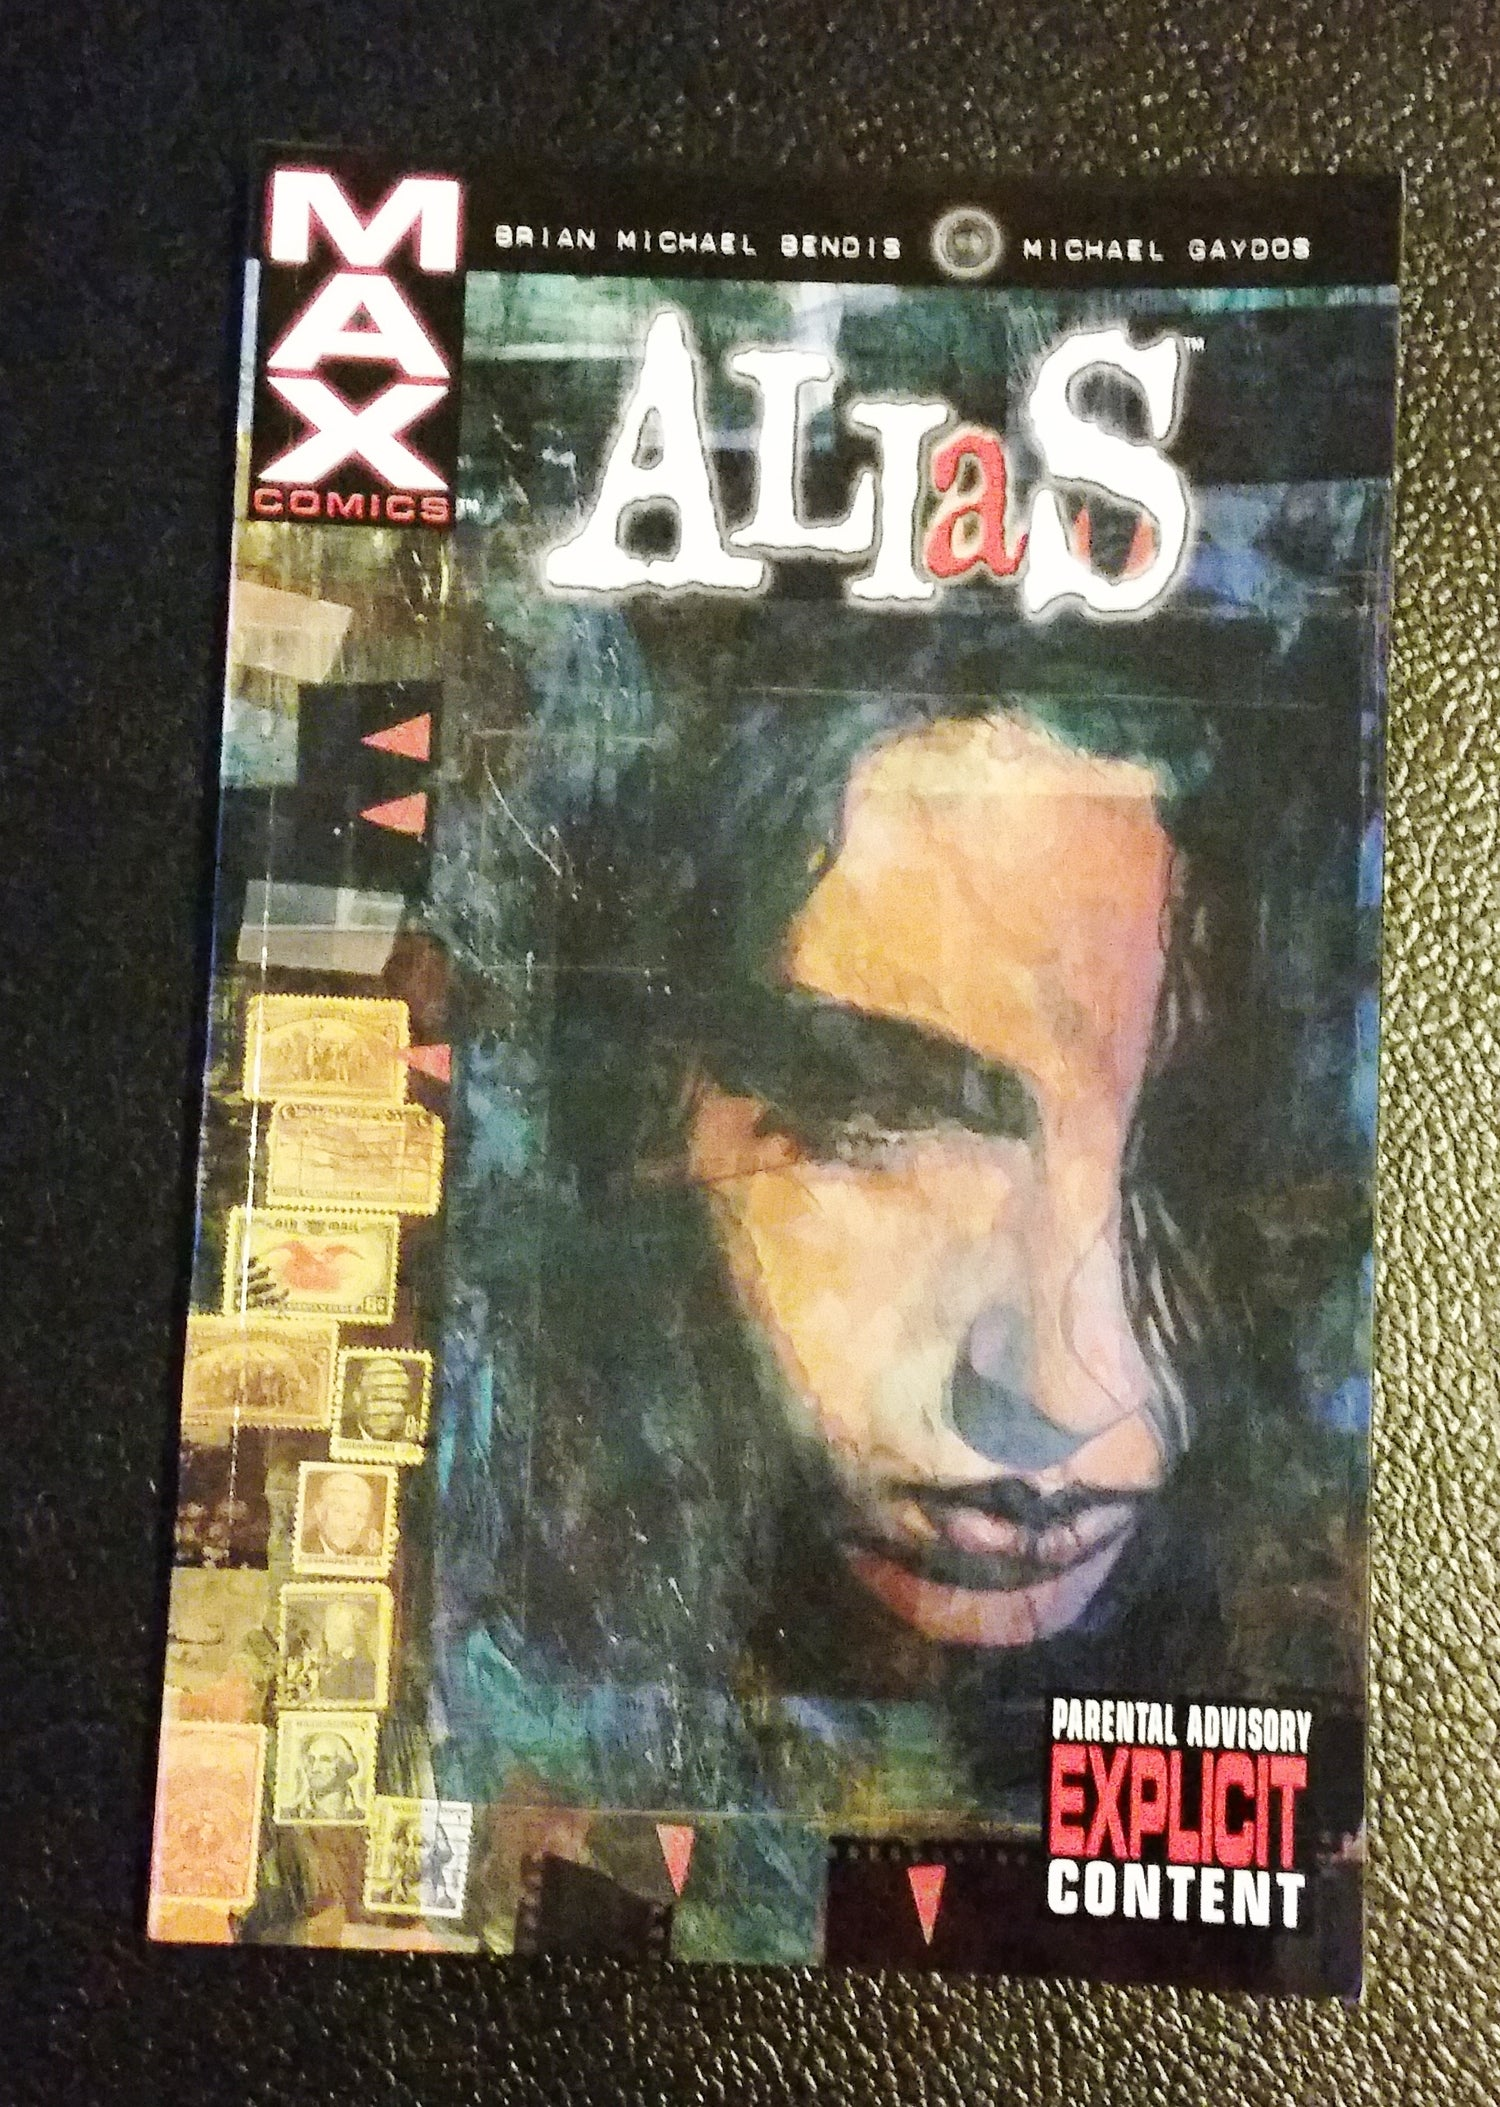 Image of ALIAS, Vol.1 (2003) signed and remarked by Michael Gaydos